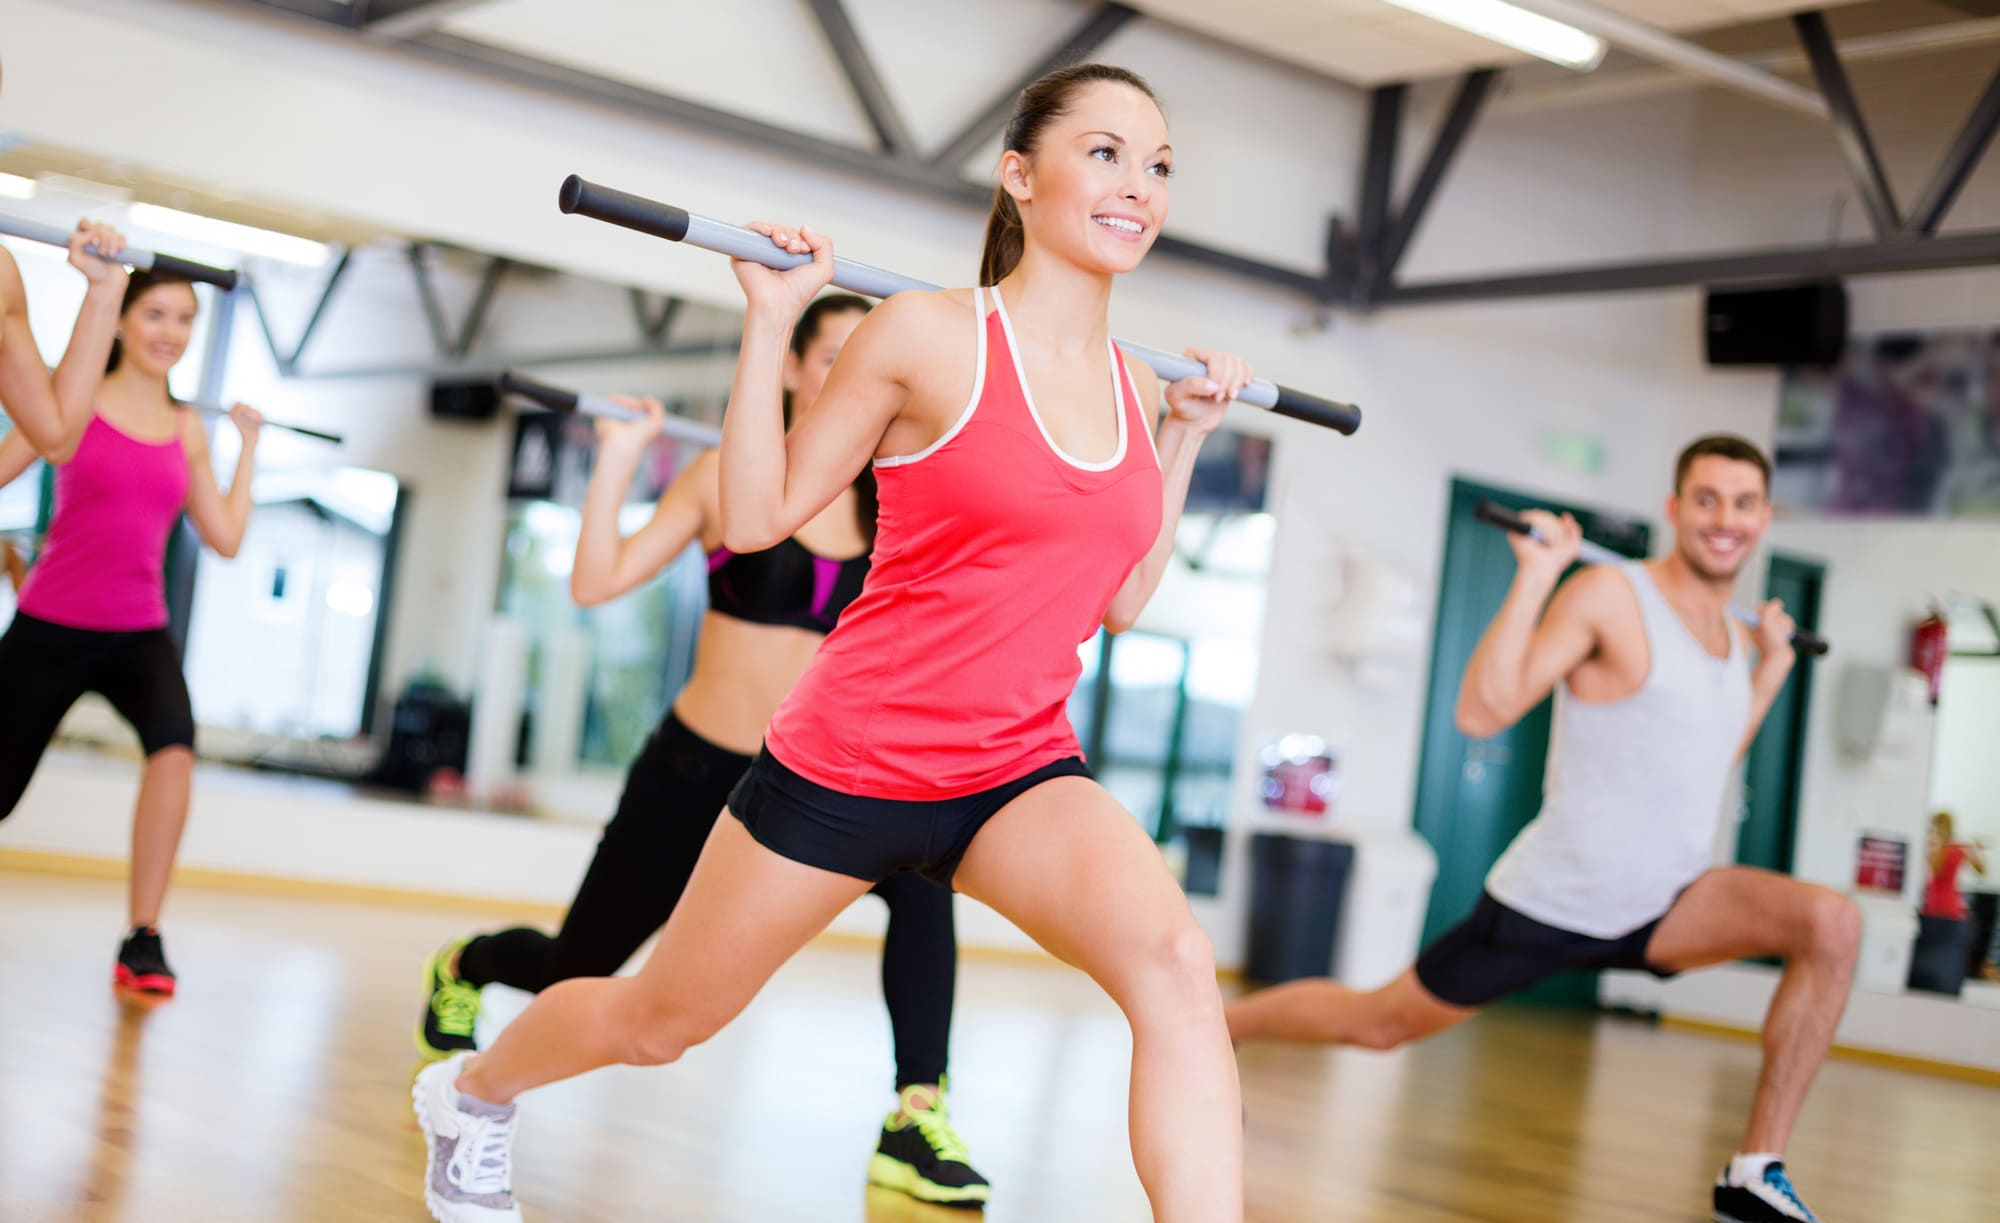 Gruppe im body muscleworkout Kurs